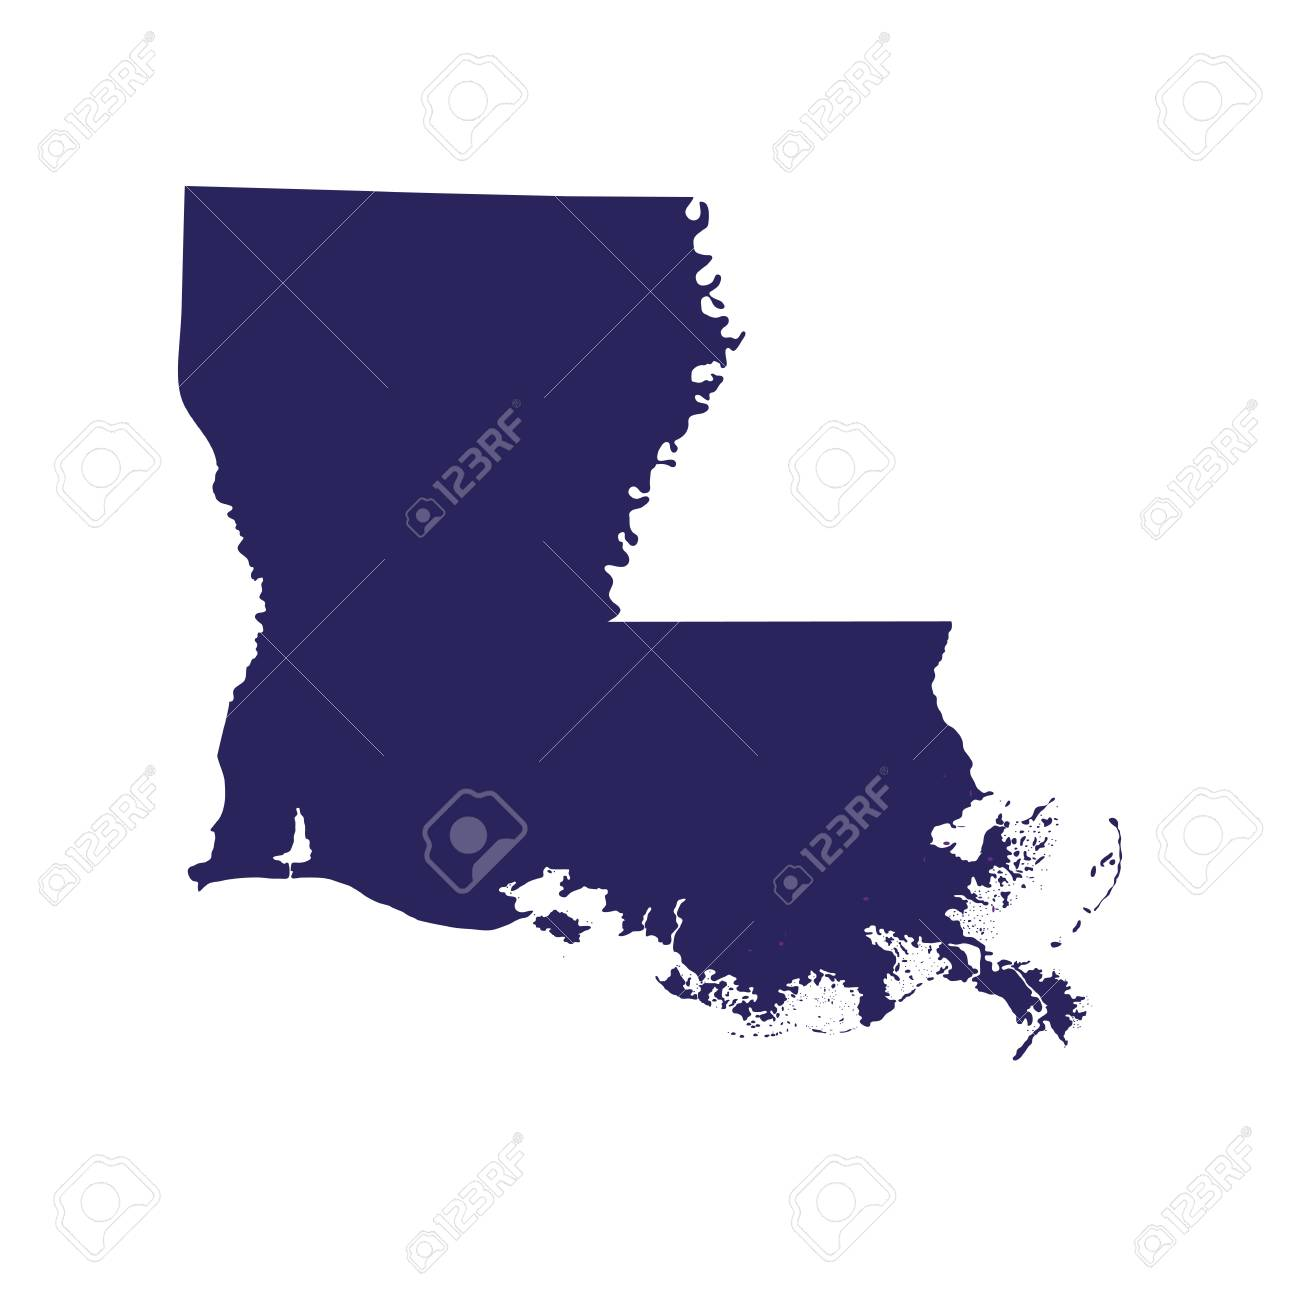 Map of the U.S. state of Louisiana in silhouette illustration. Map All Louisiana S on michigan's map, la city map, missouri's map, indiana's map, kentucky's map, oklahoma's map, mississippi's map, nevada's map, new mexico's map, maryland's map,